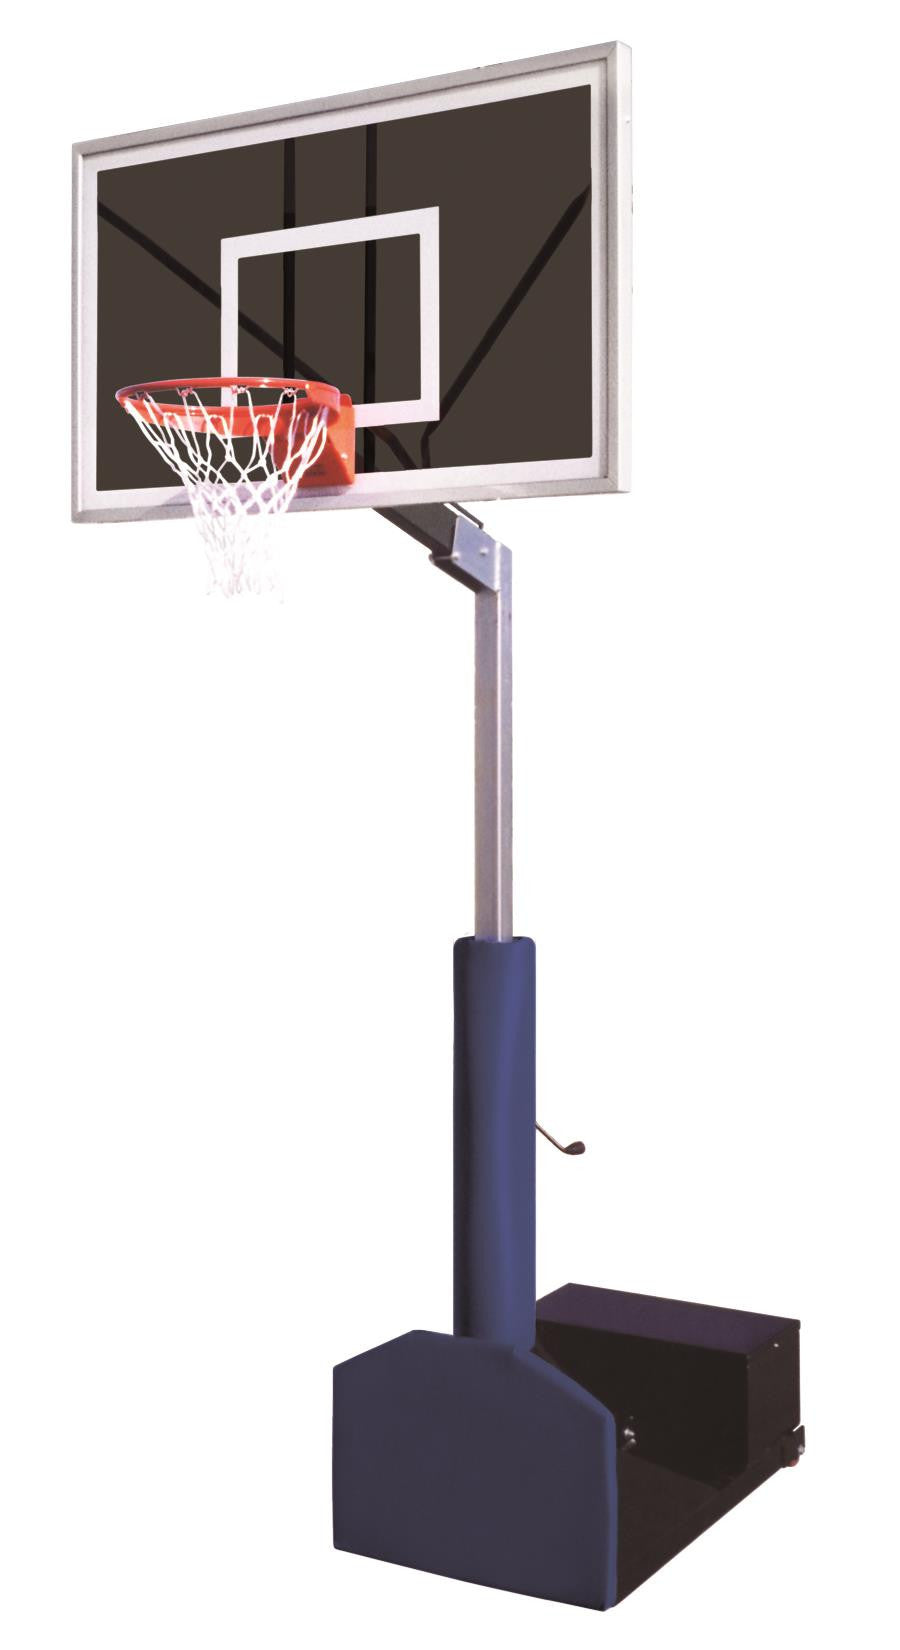 First Team Rampage Eclipse Adjustable Portable Basketball Hoop 60 inch Smoked Glass